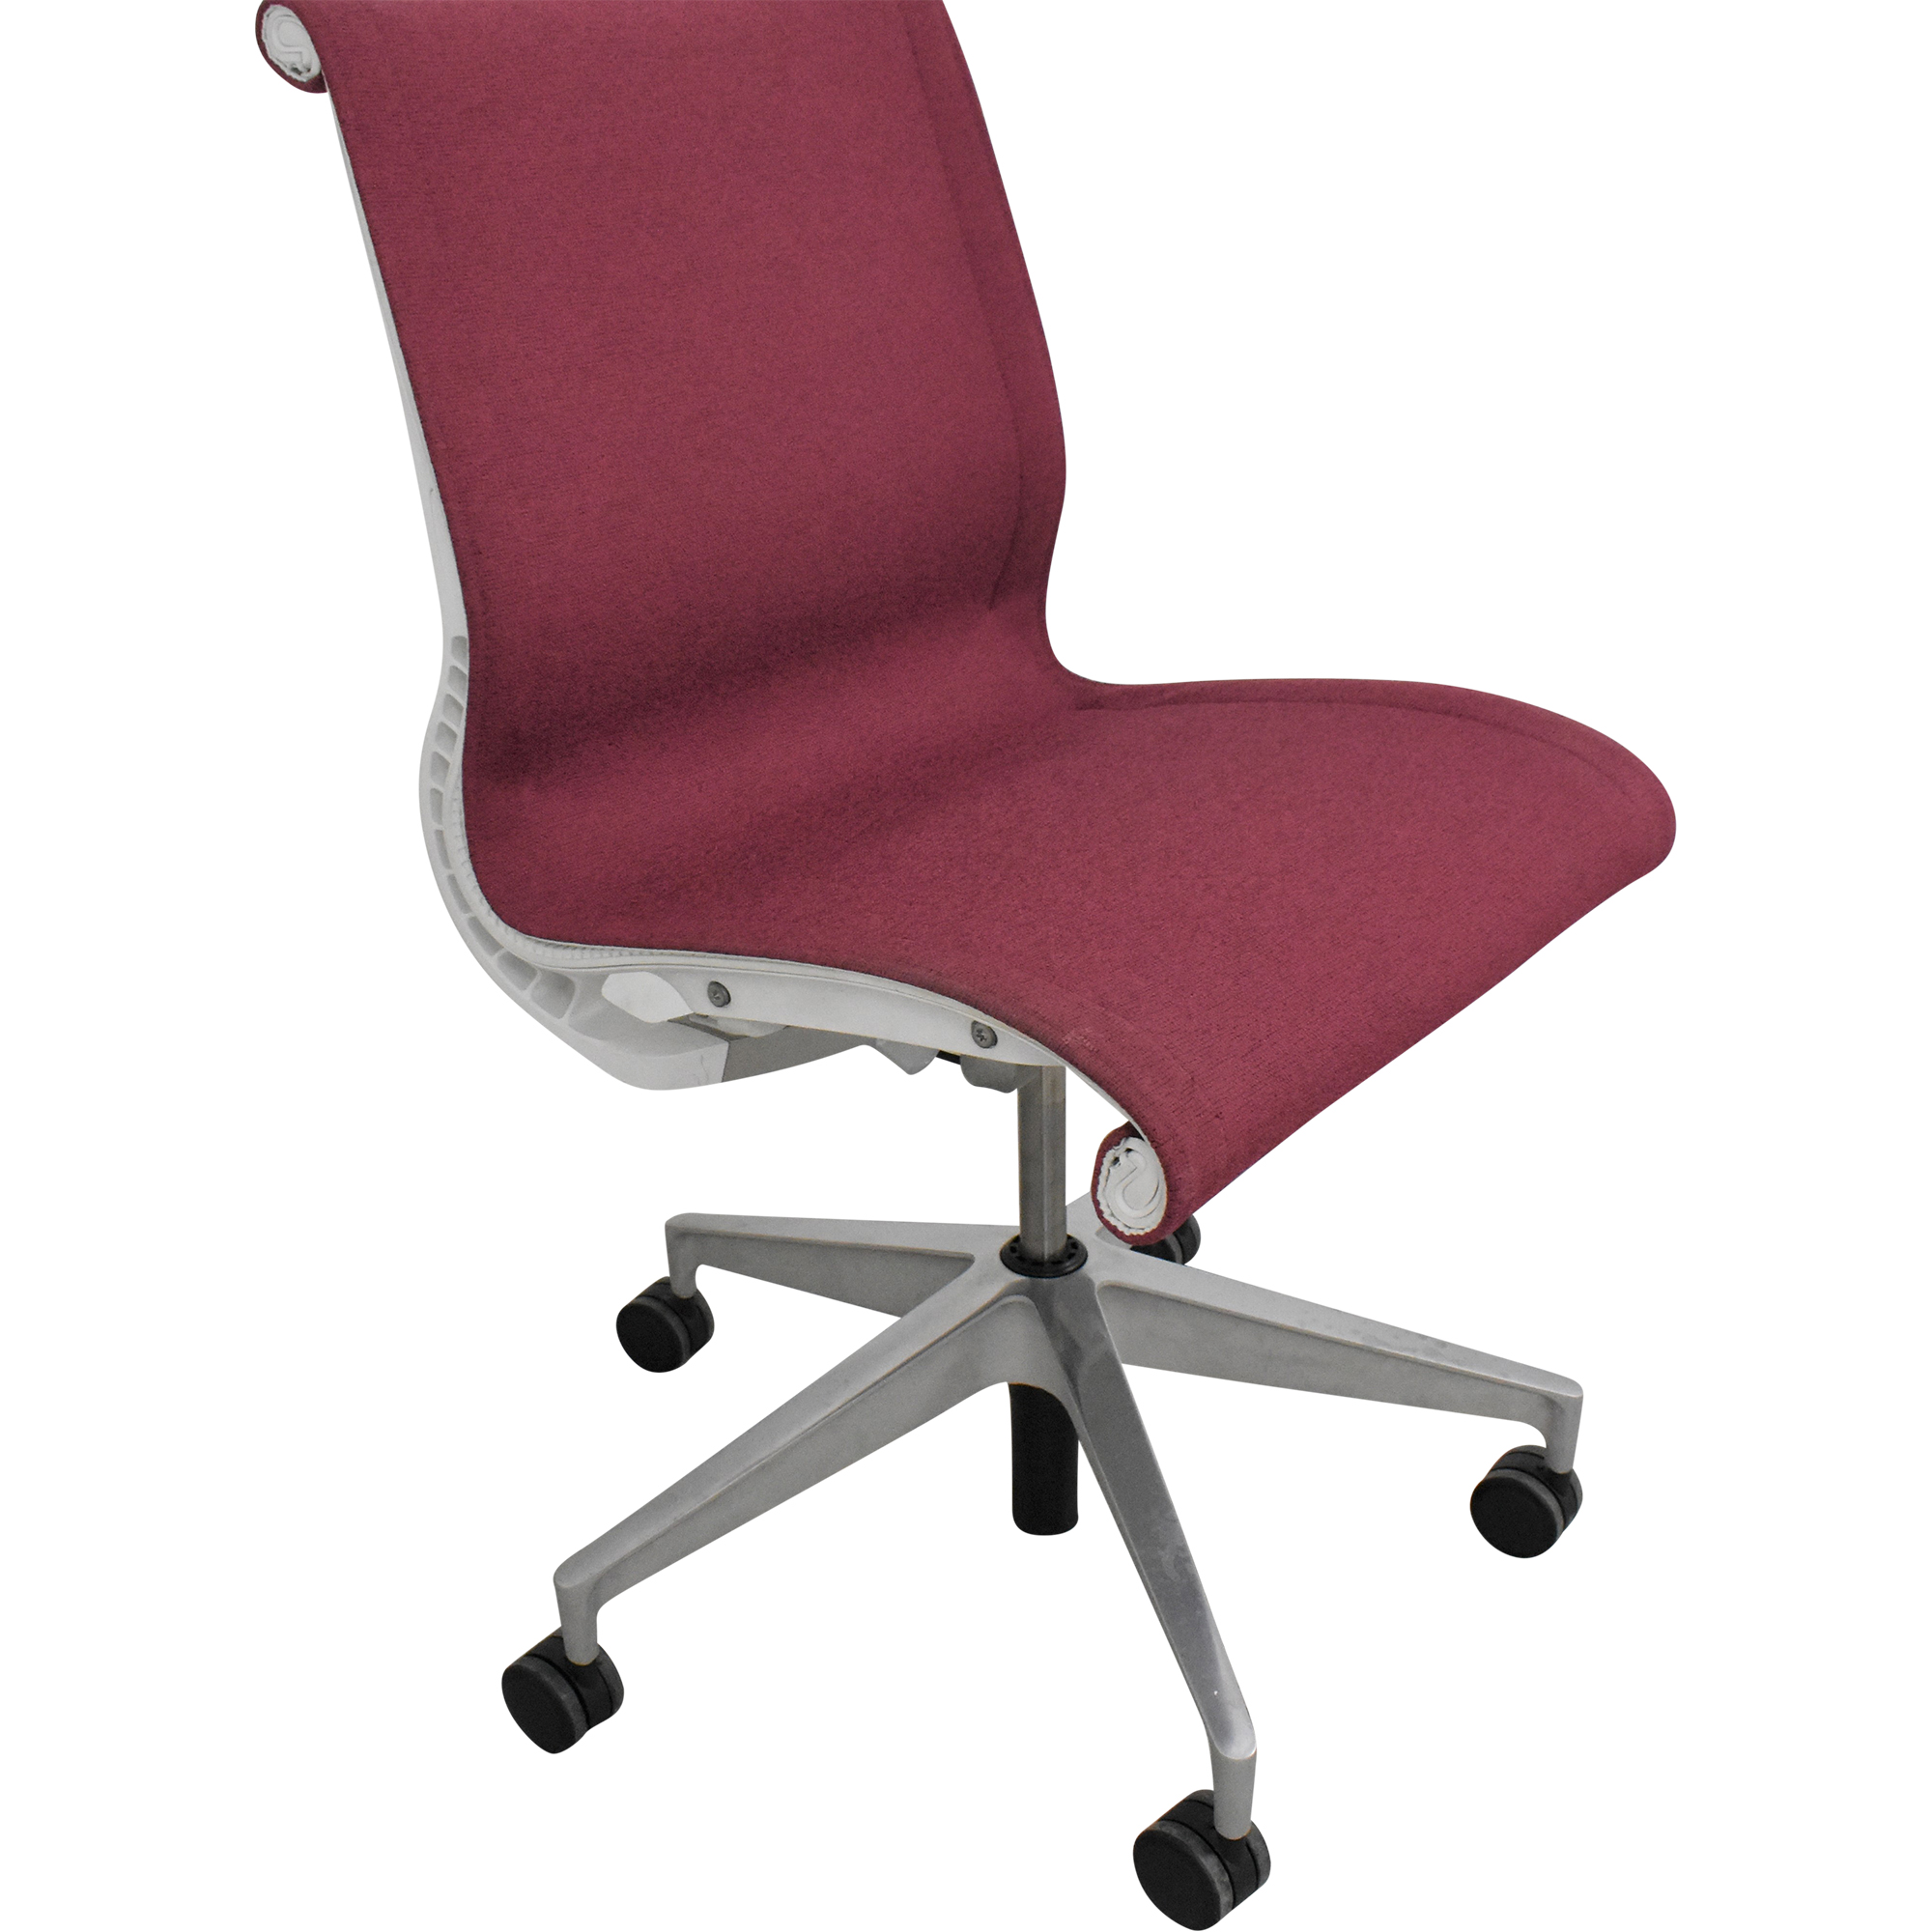 Herman Miller Herman Miller Setu Chair on sale